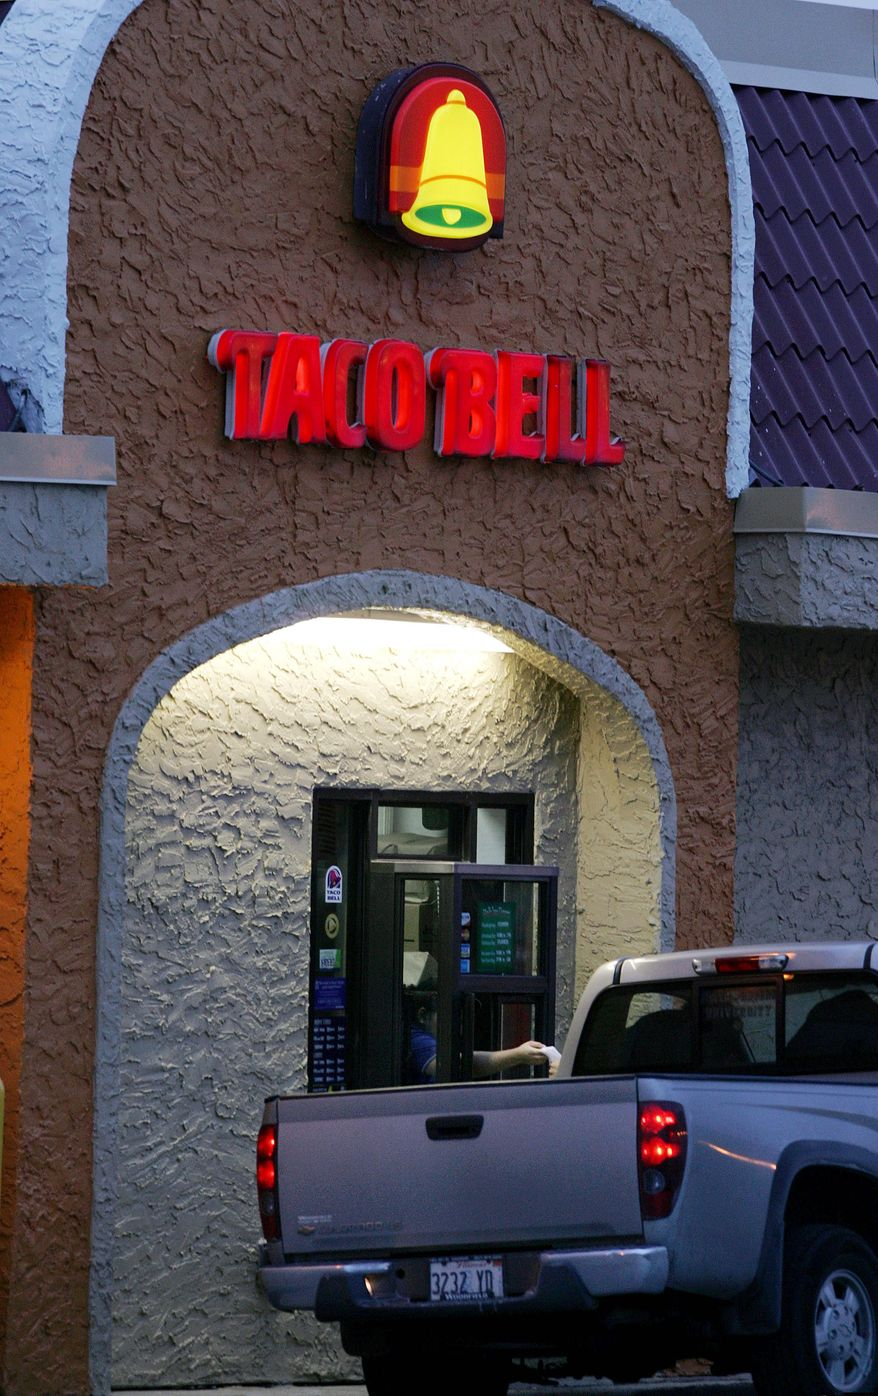 **FILE** A worker hands an order from the drive-thru window at a Taco Bell restaurant in South Plainfield, N.J., on Dec. 12, 2006. (Associated Press)